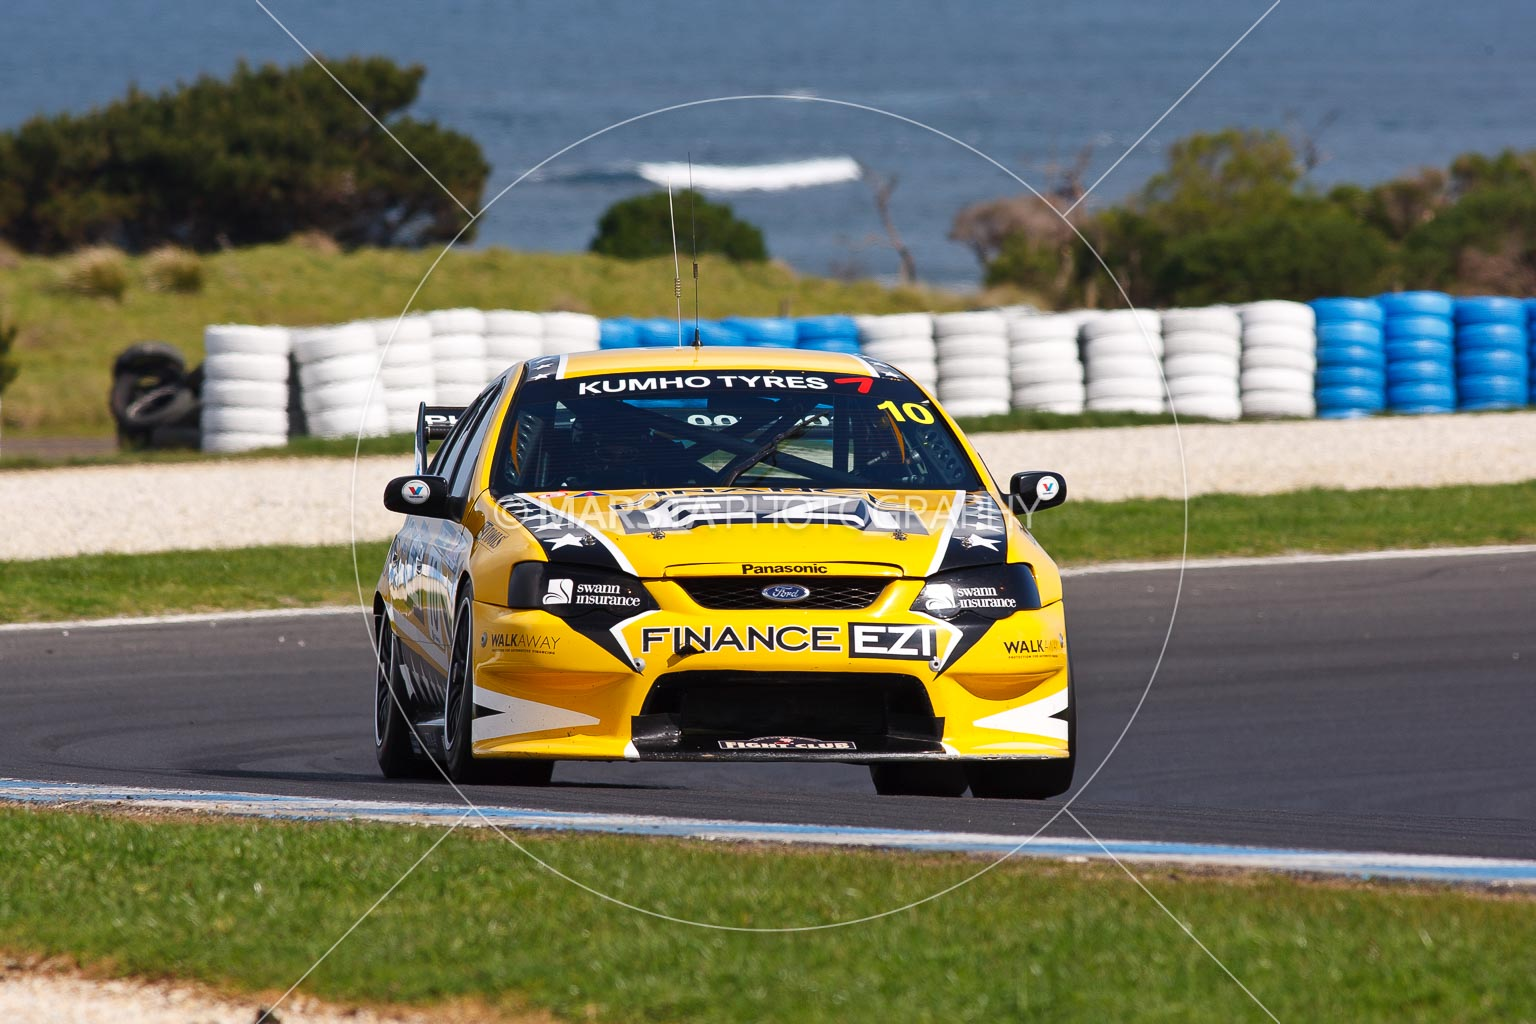 (10);10;23 September 2012;Australia;Ford Falcon BA;Maurice Pickering;Phillip Island;Shannons Nationals;V8 Touring Cars;VIC;Victoria;auto;motorsport;racing;super telephoto